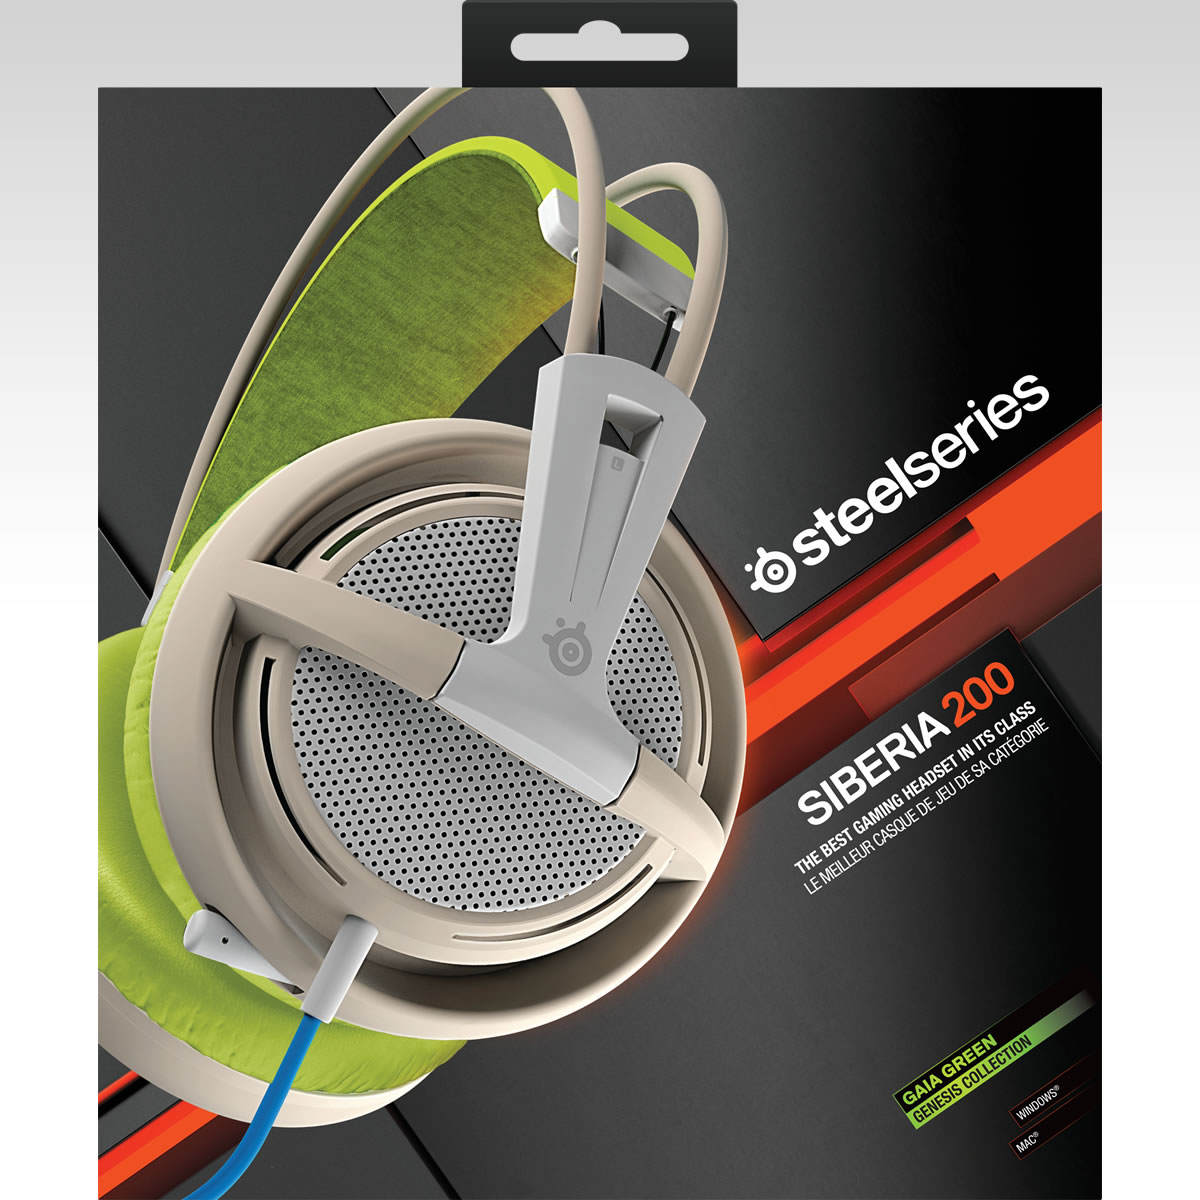 STEELSERIES - HEADSET SIBERIA 200 GAIA GREEN 51137 (PC, Mac, PS4, Mobile)